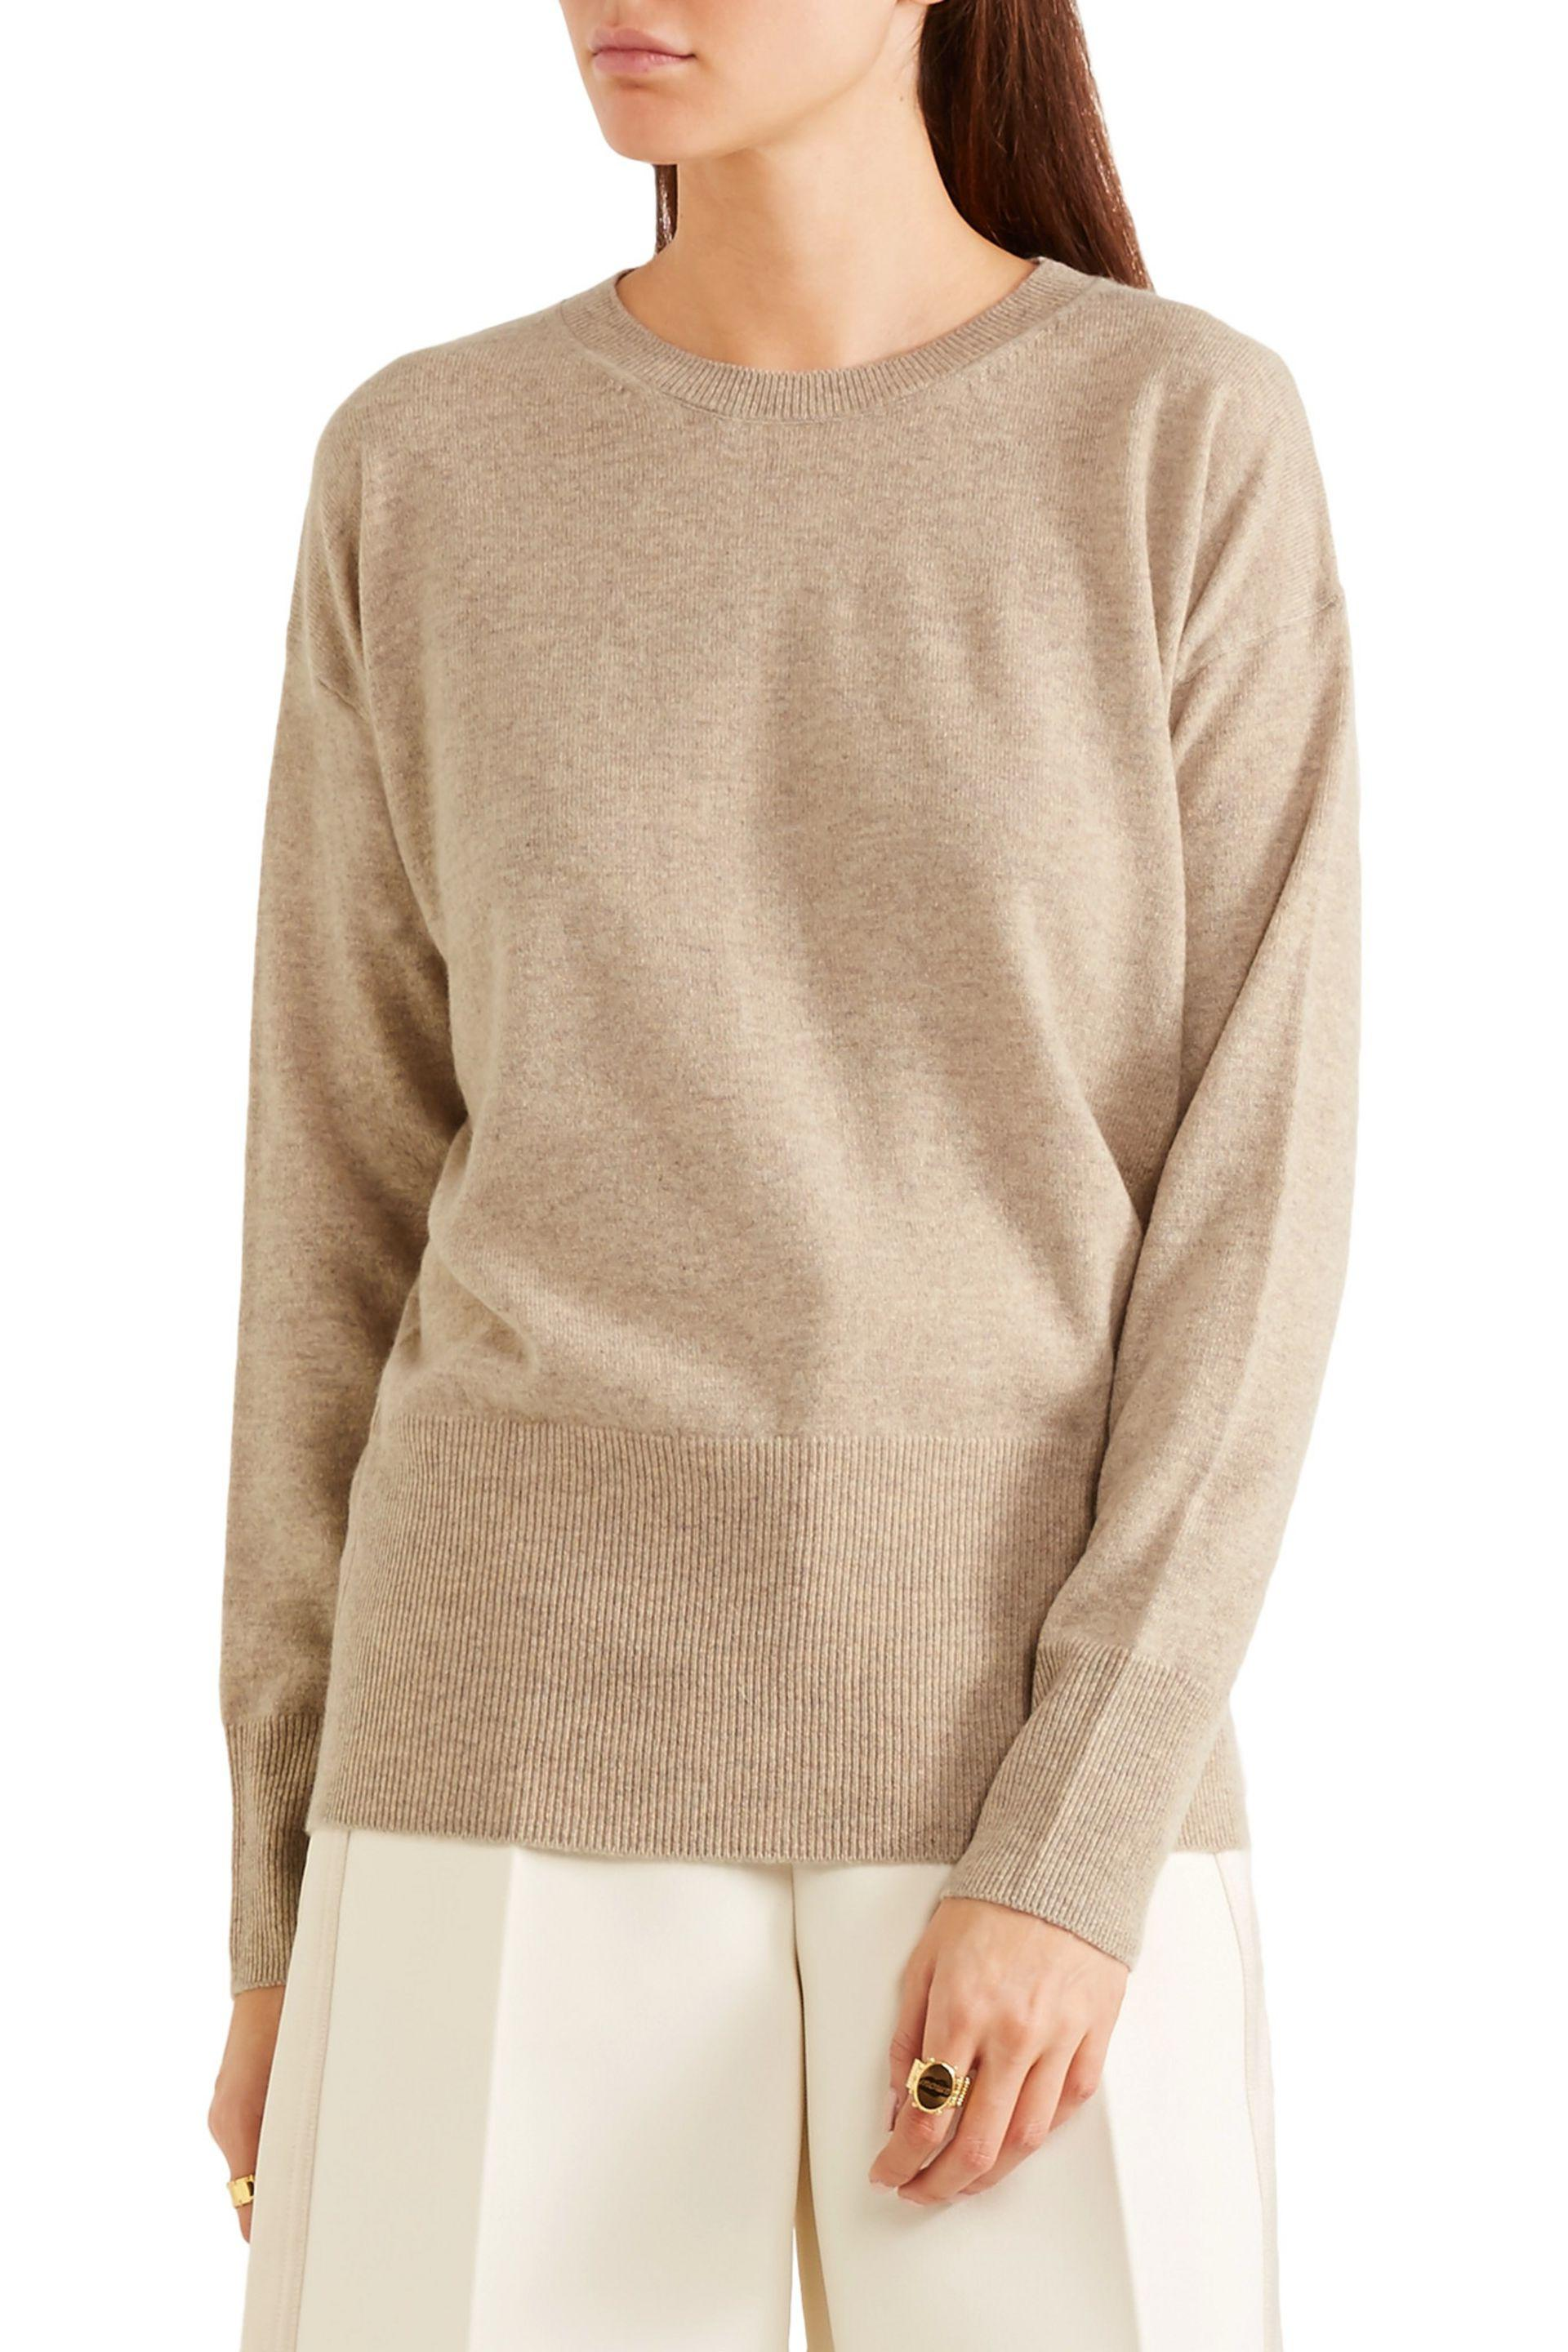 5ffe0599b5b Lyst - Vince Cutout Cashmere Sweater in Natural